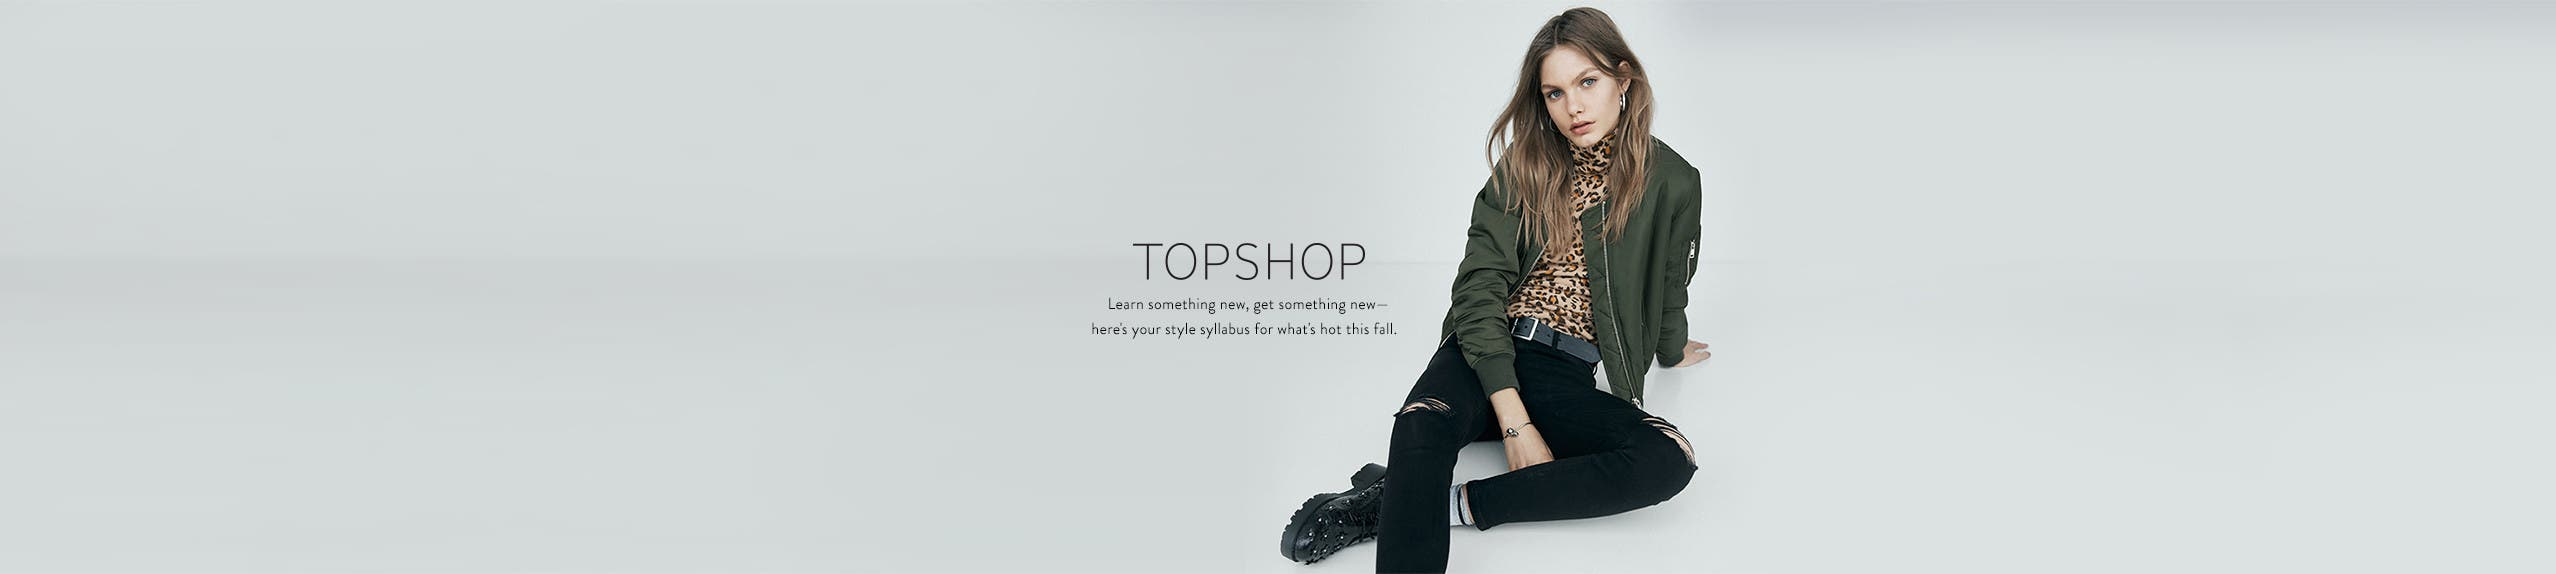 Topshop clothing, shoes and accessories at Anniversary Sale.